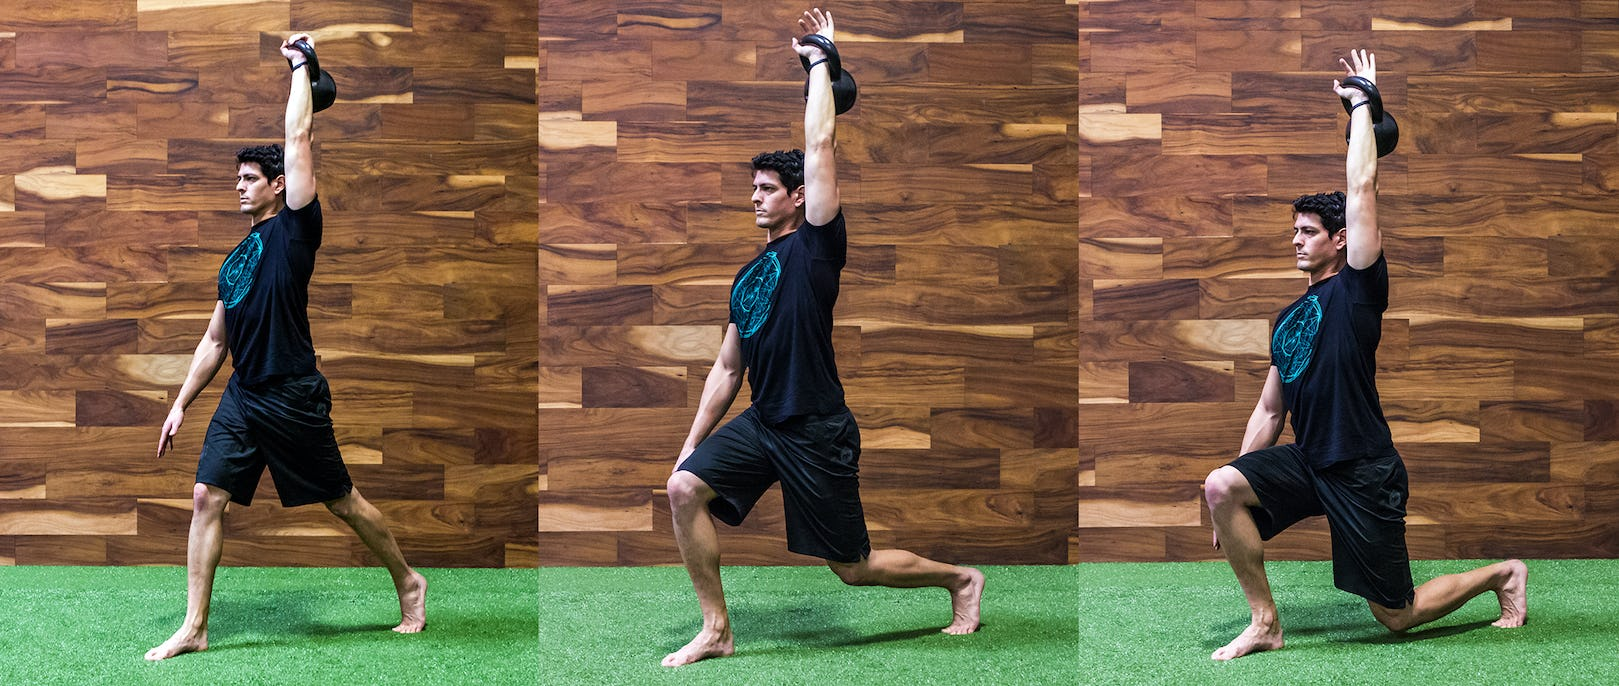 How to Perform the 1-Arm Overhead Lunge